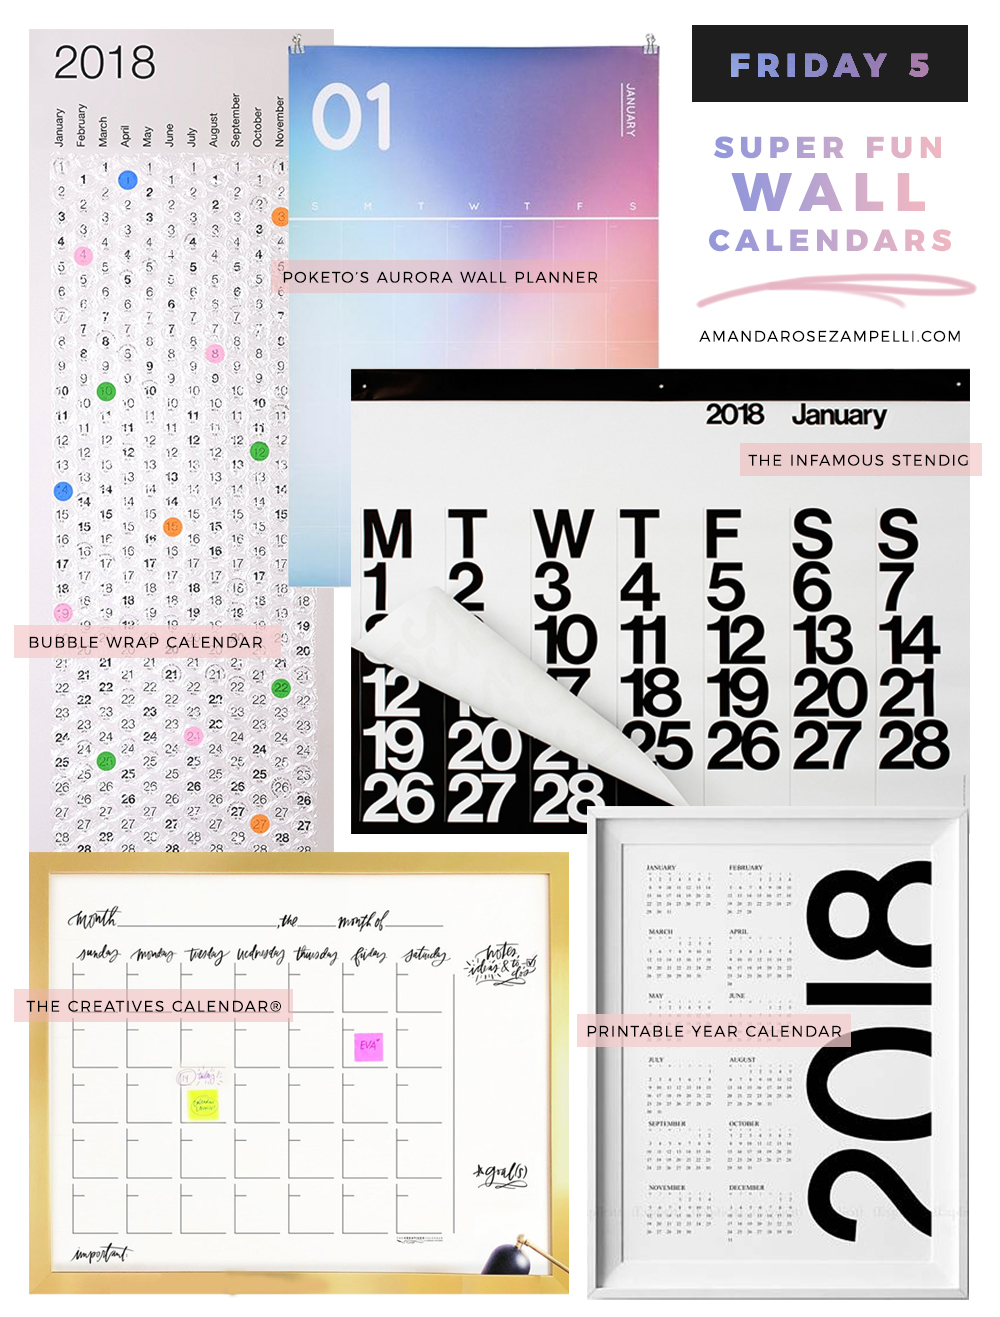 Five FUN Wall Calendars | Amanda Zampelli